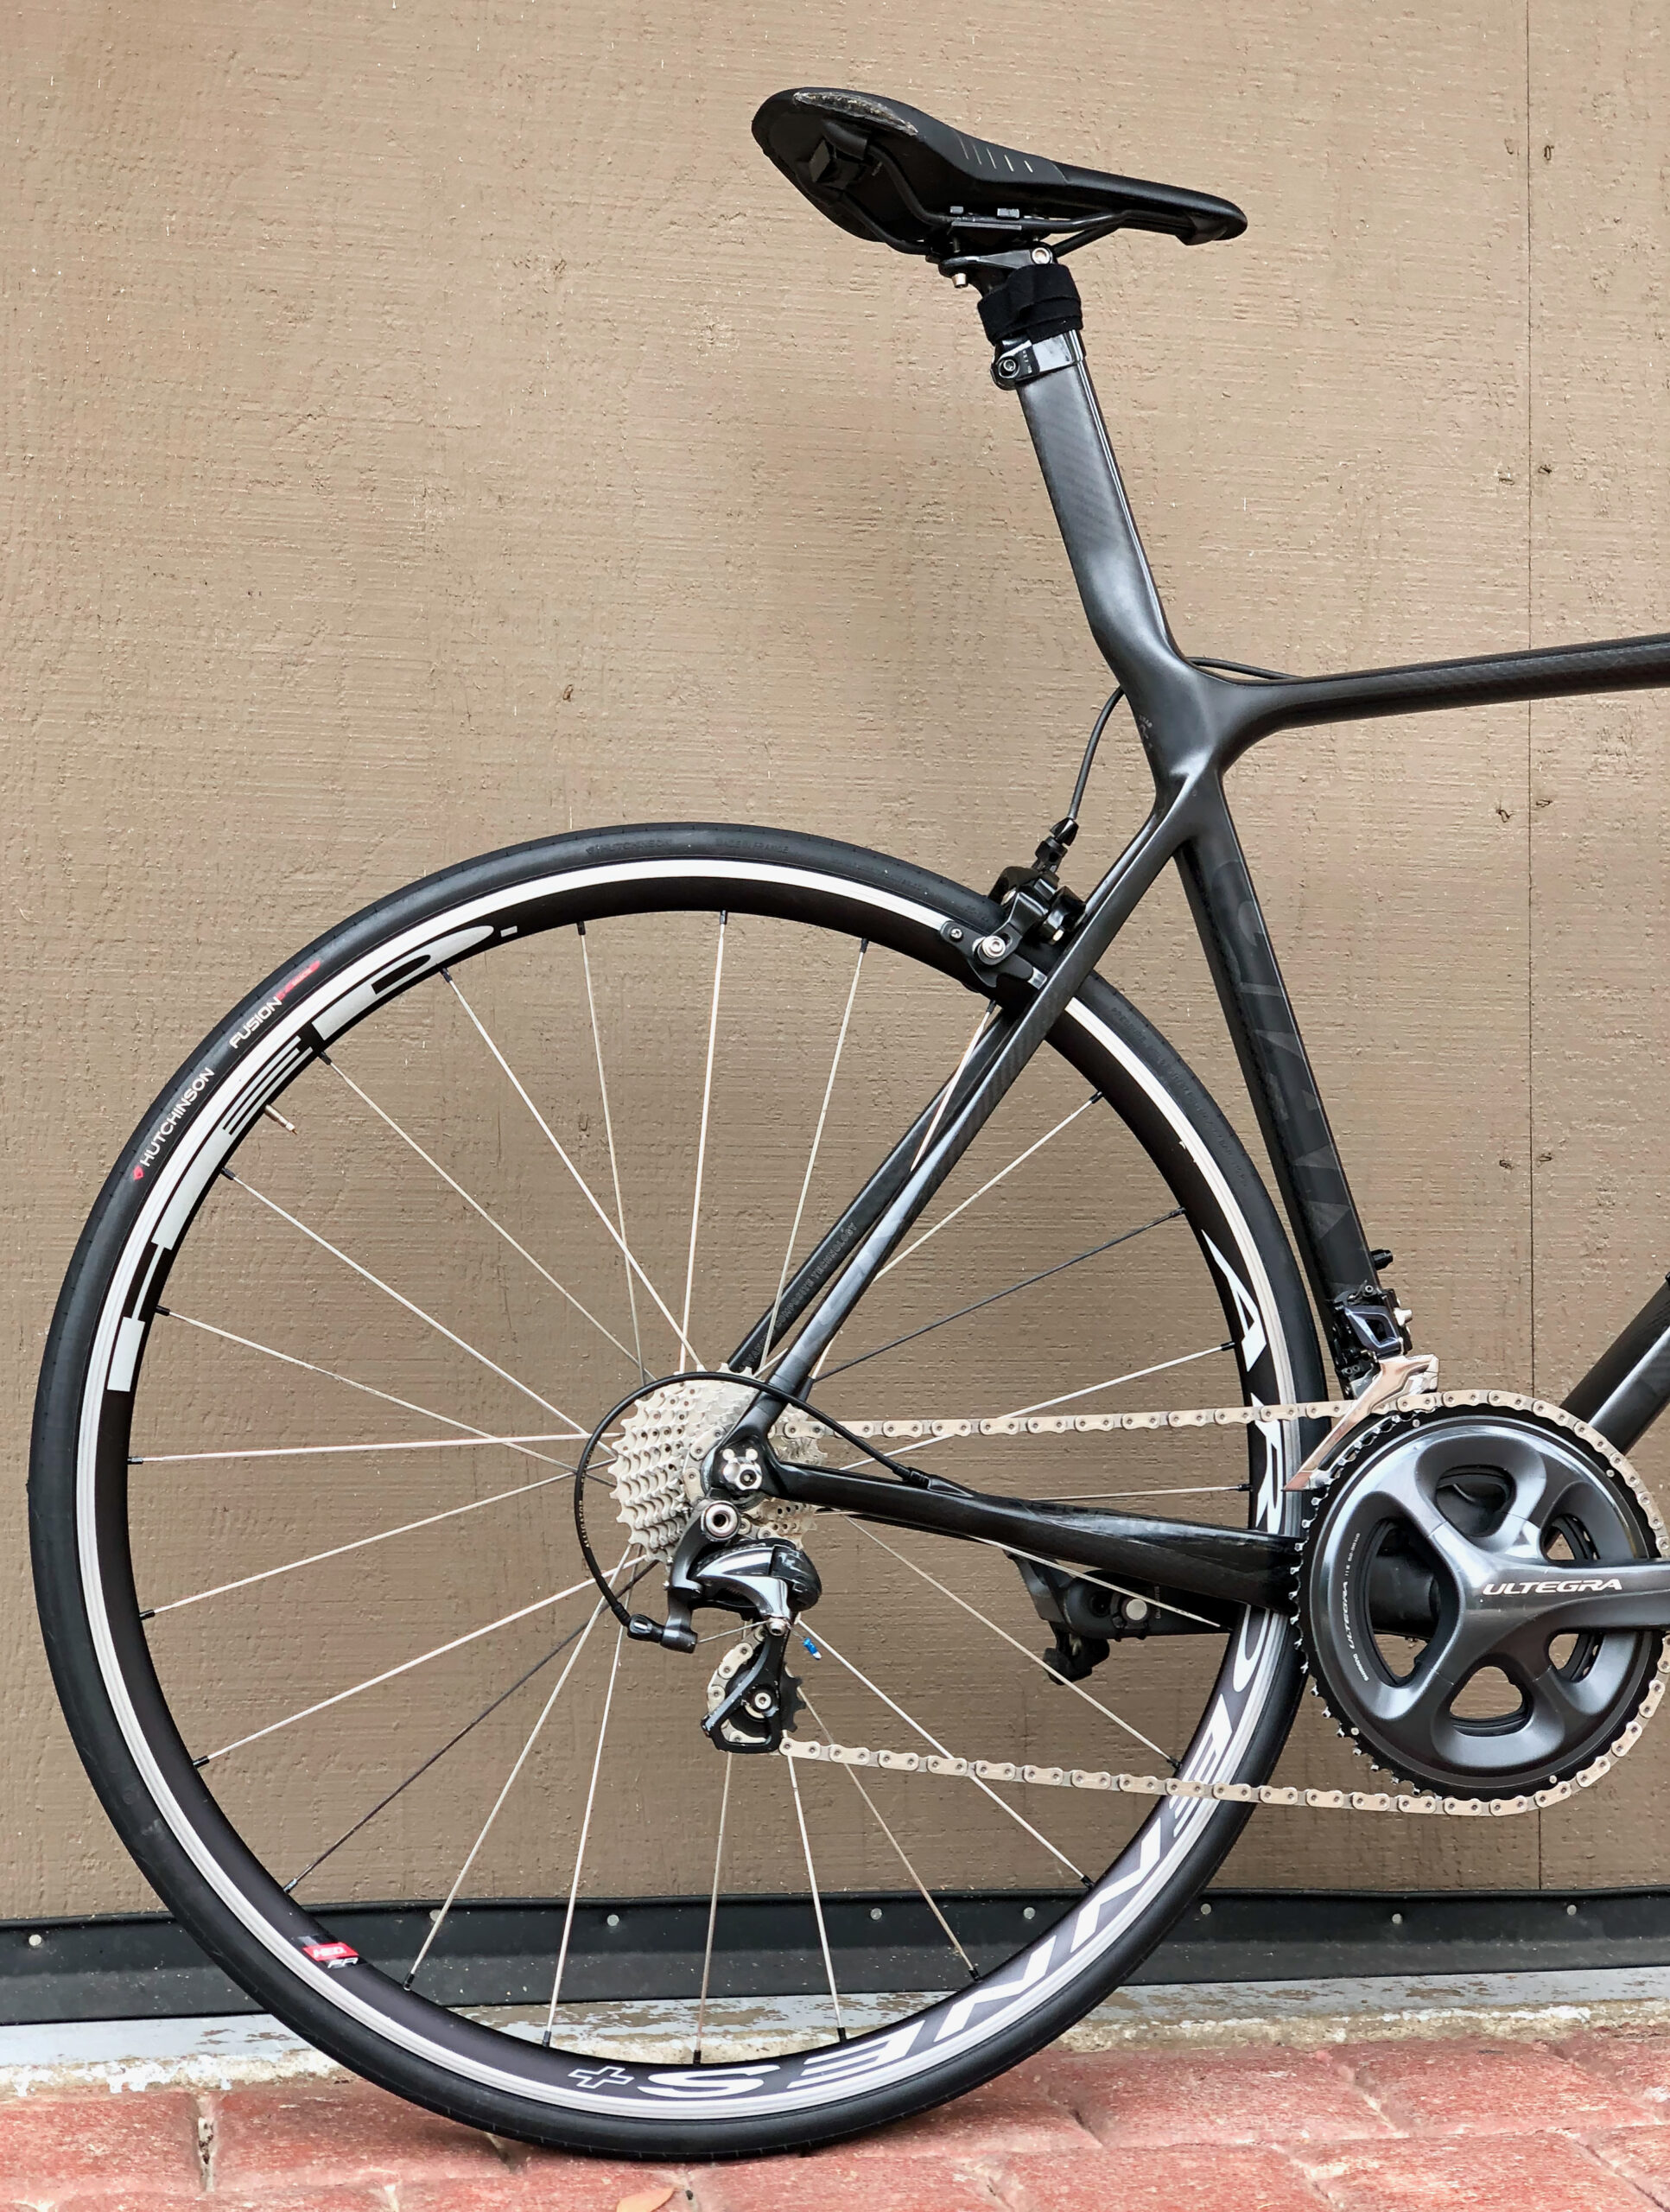 Giant TCR Advanced SL 2 Ultegra 105 11 sp HED Ardennes Full Carbon Road Bike XL